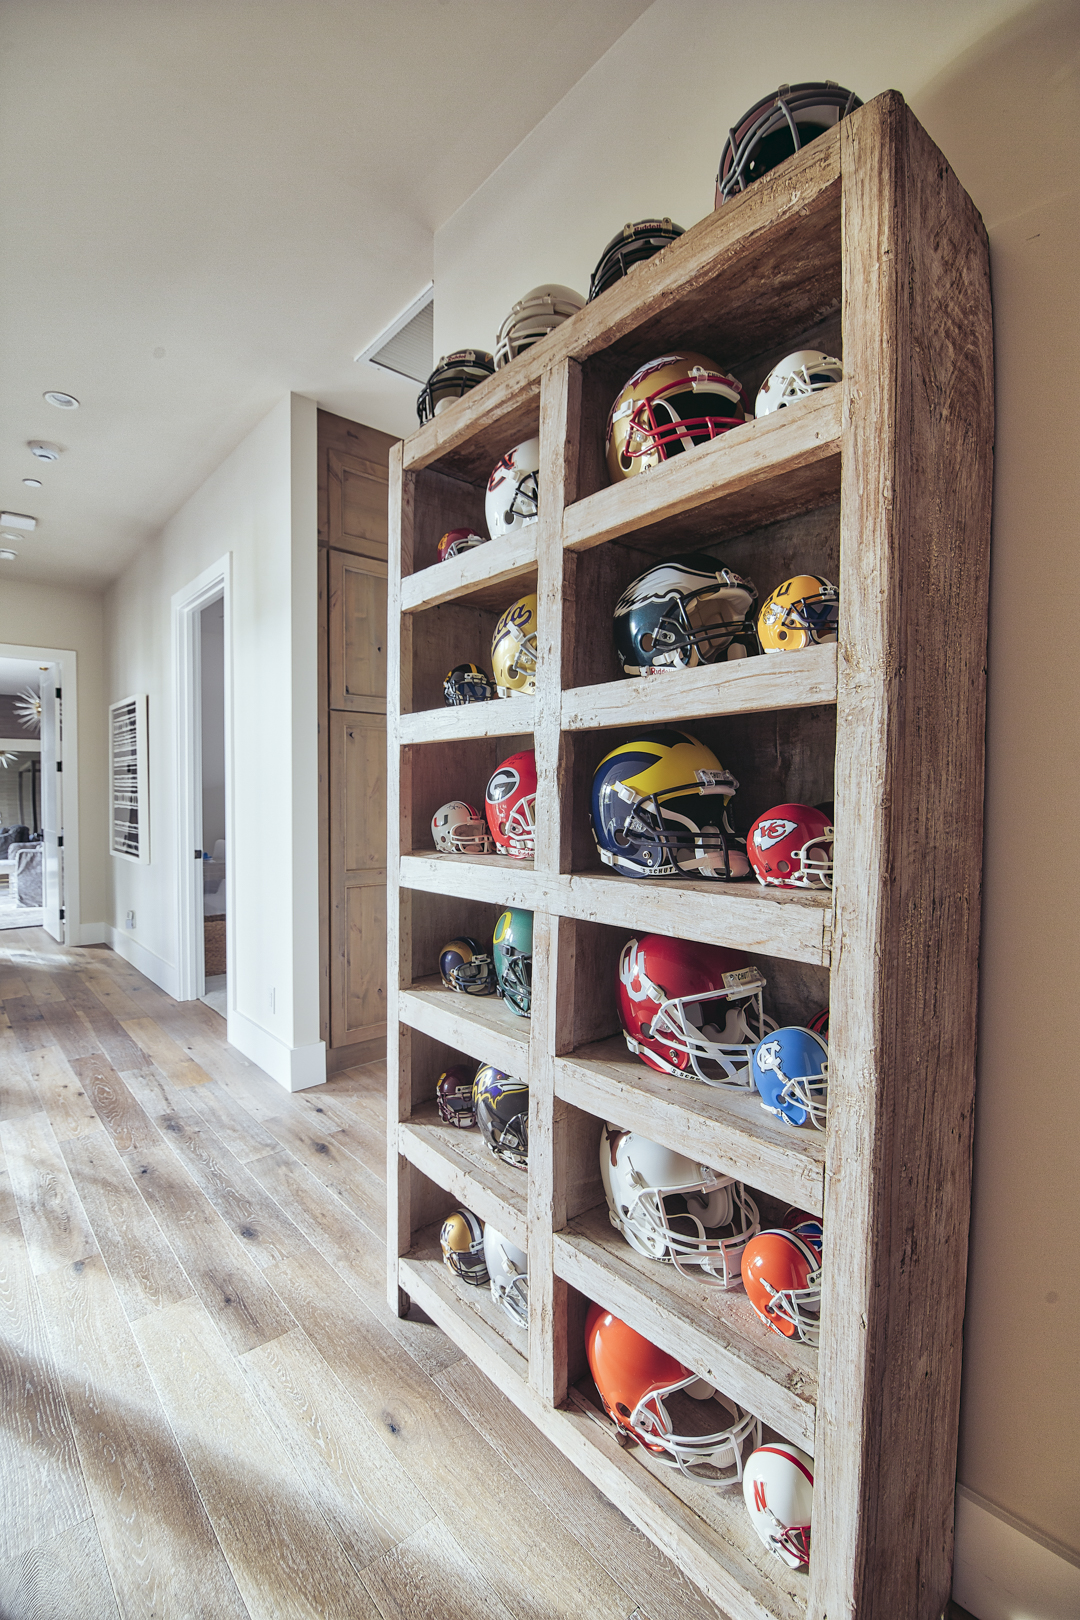 Bungalow Furniture & Accessories - Scottsdale, AZ - Bookshelf